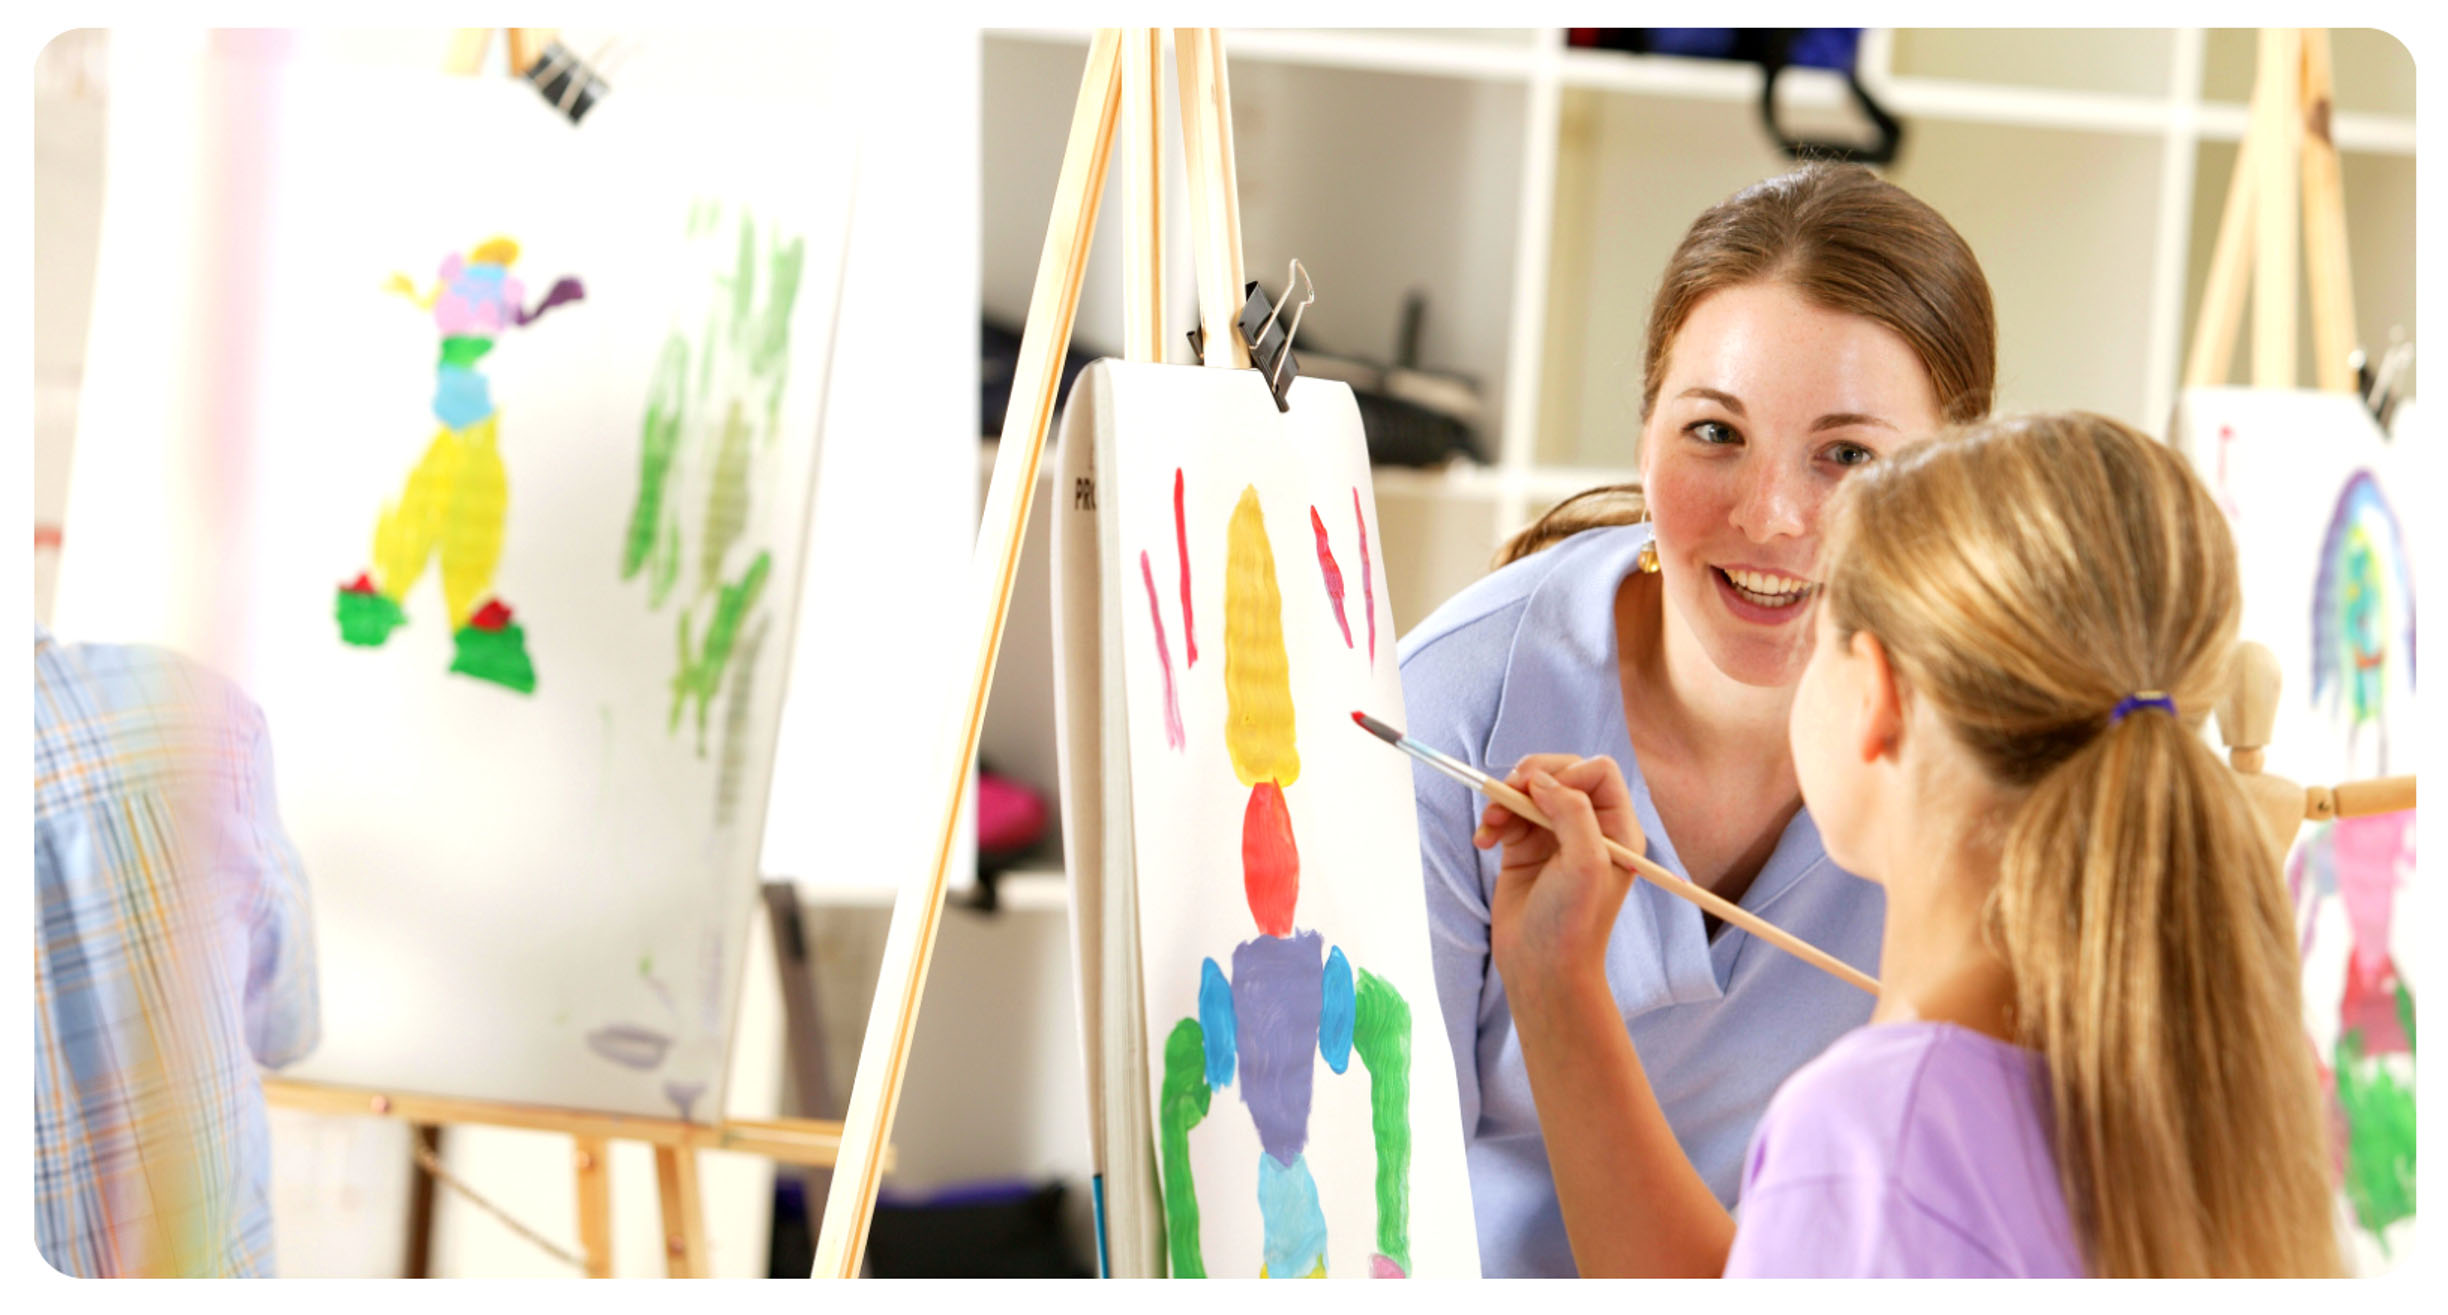 KinderArt.com - art curriculum for all ages